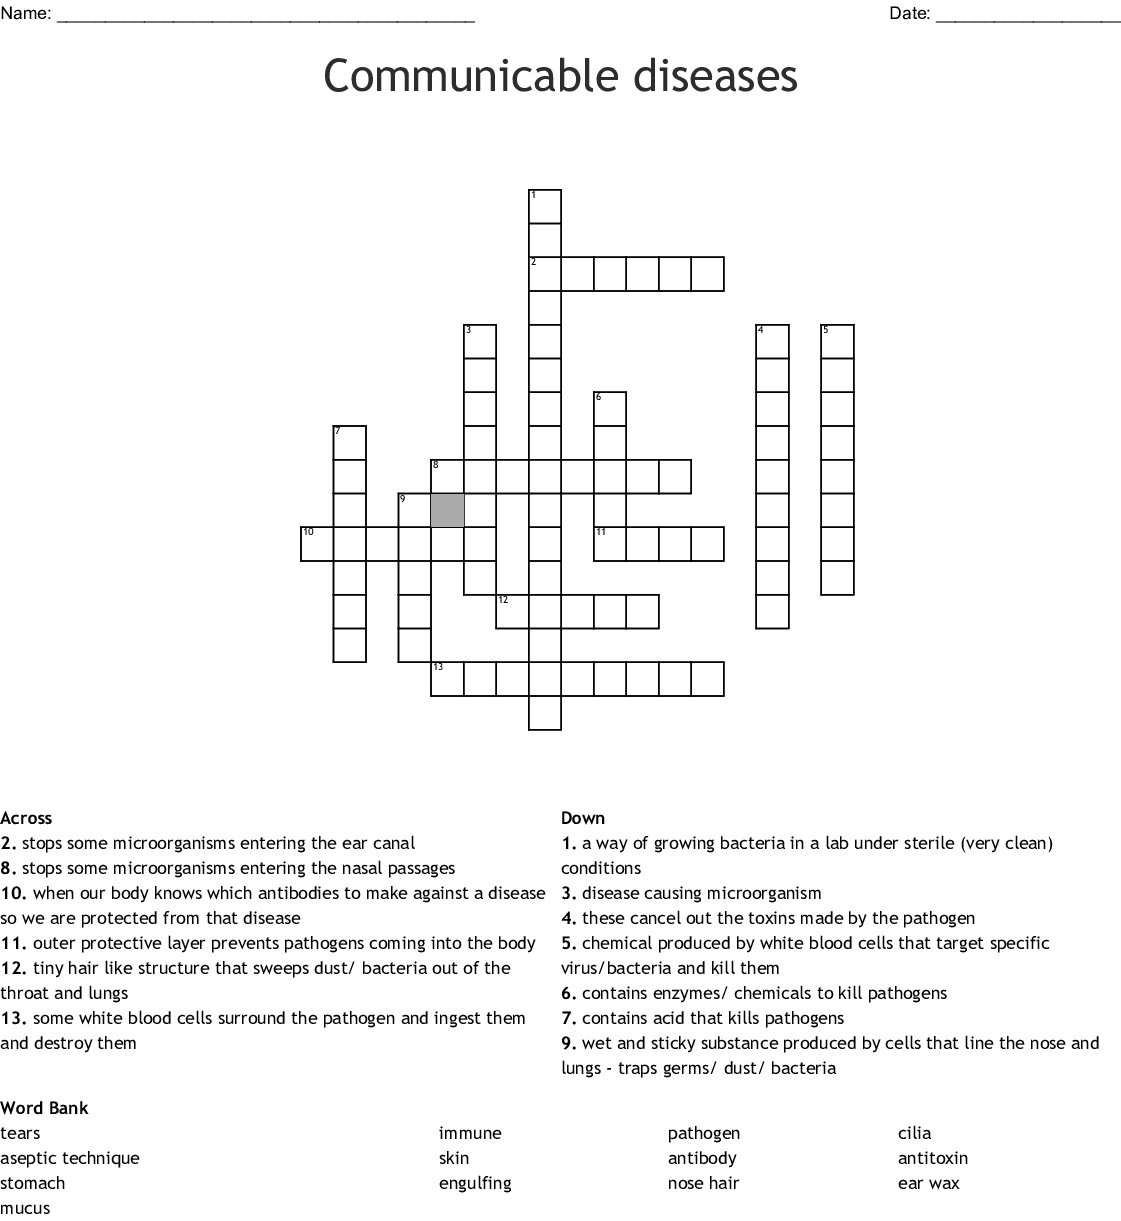 hight resolution of communicable diseases